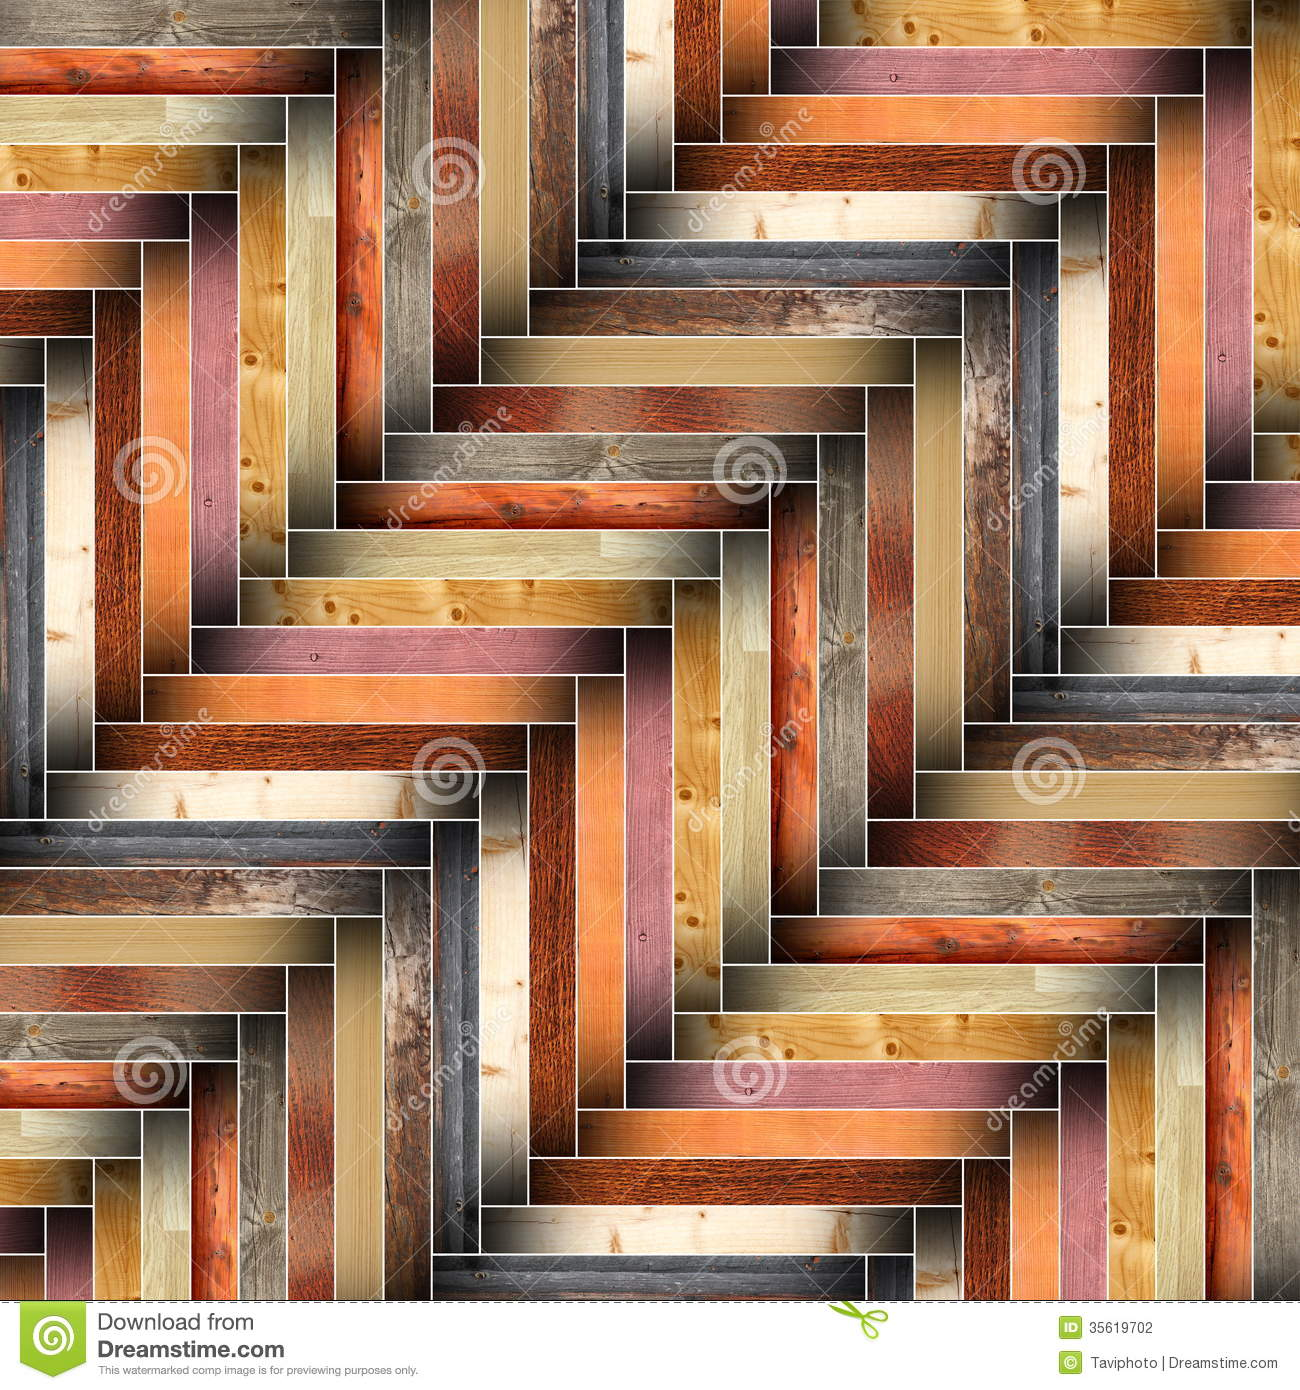 Many different wood tiles forming floor design stock photography